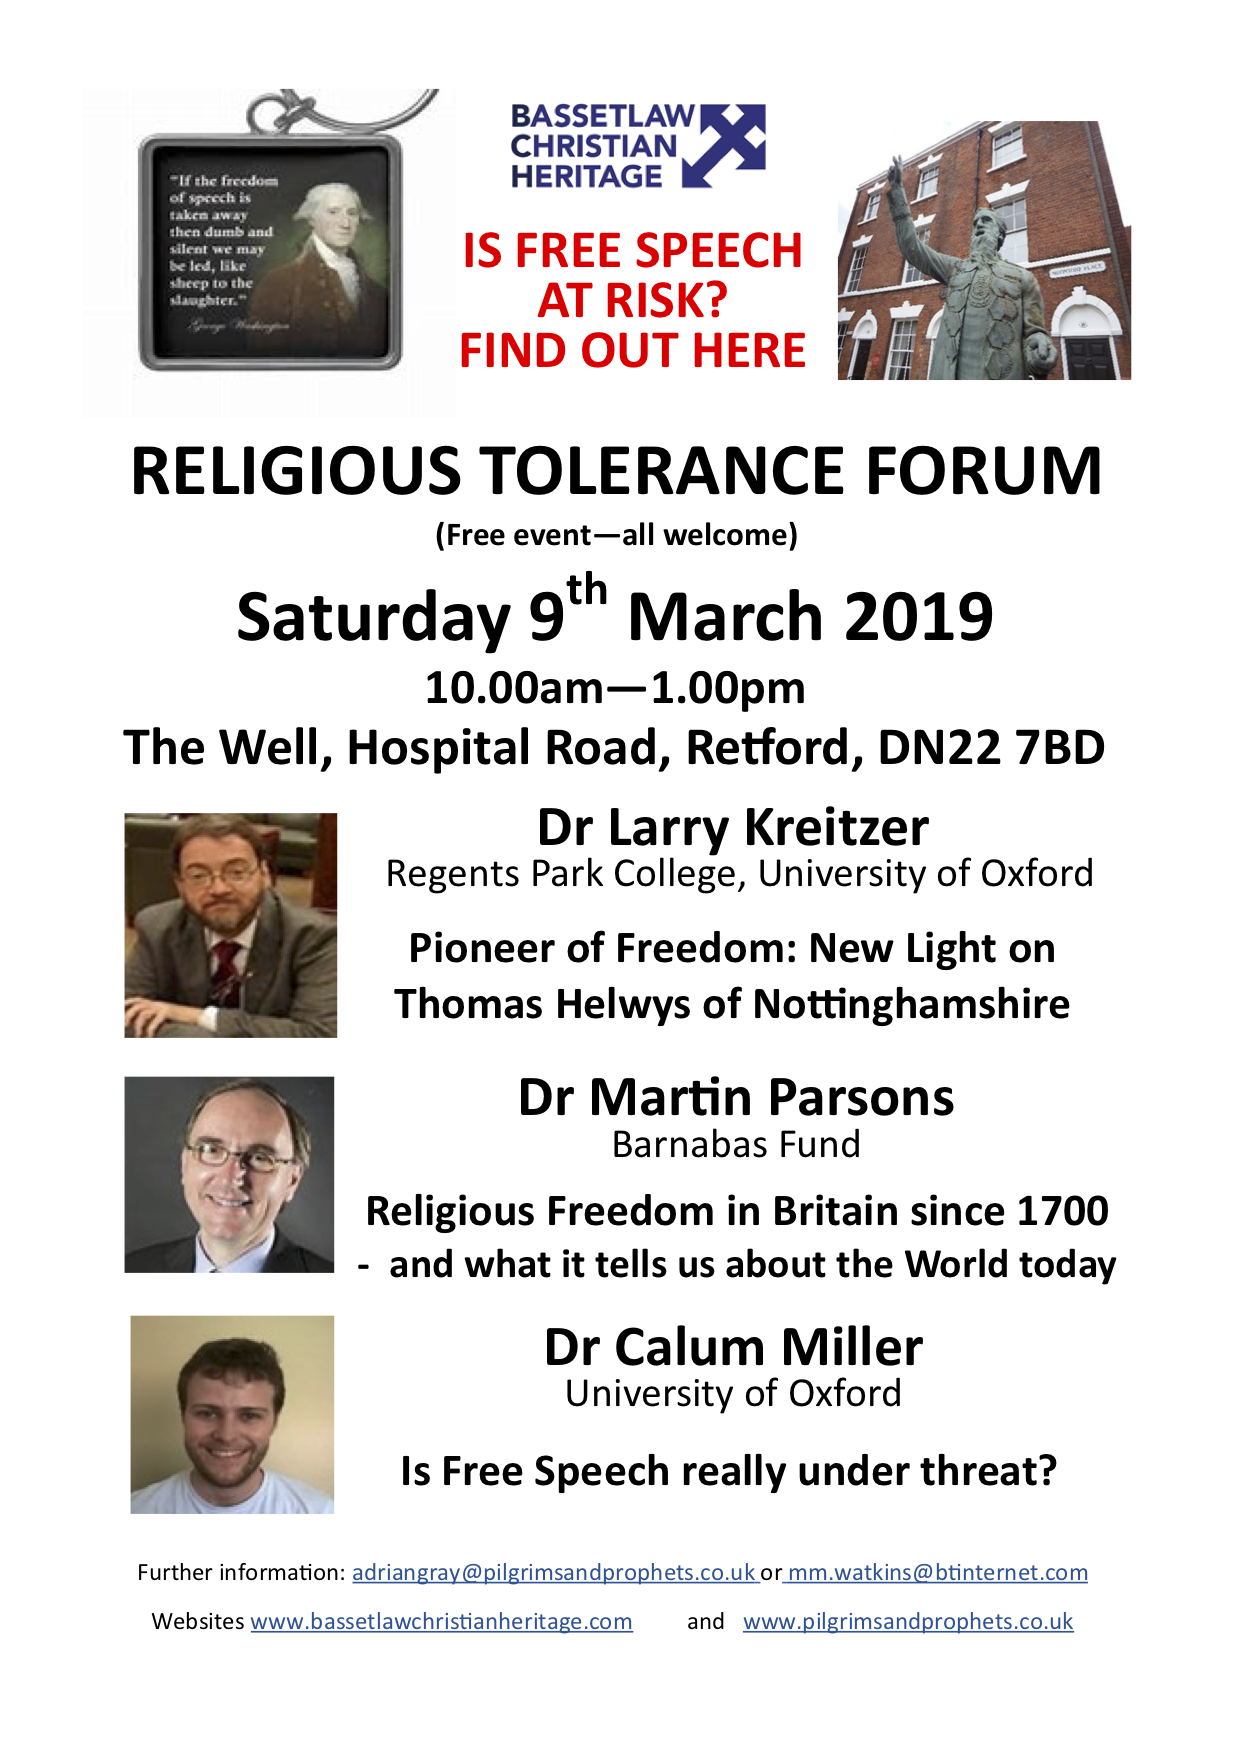 religious tolerance forum poster PNG 219